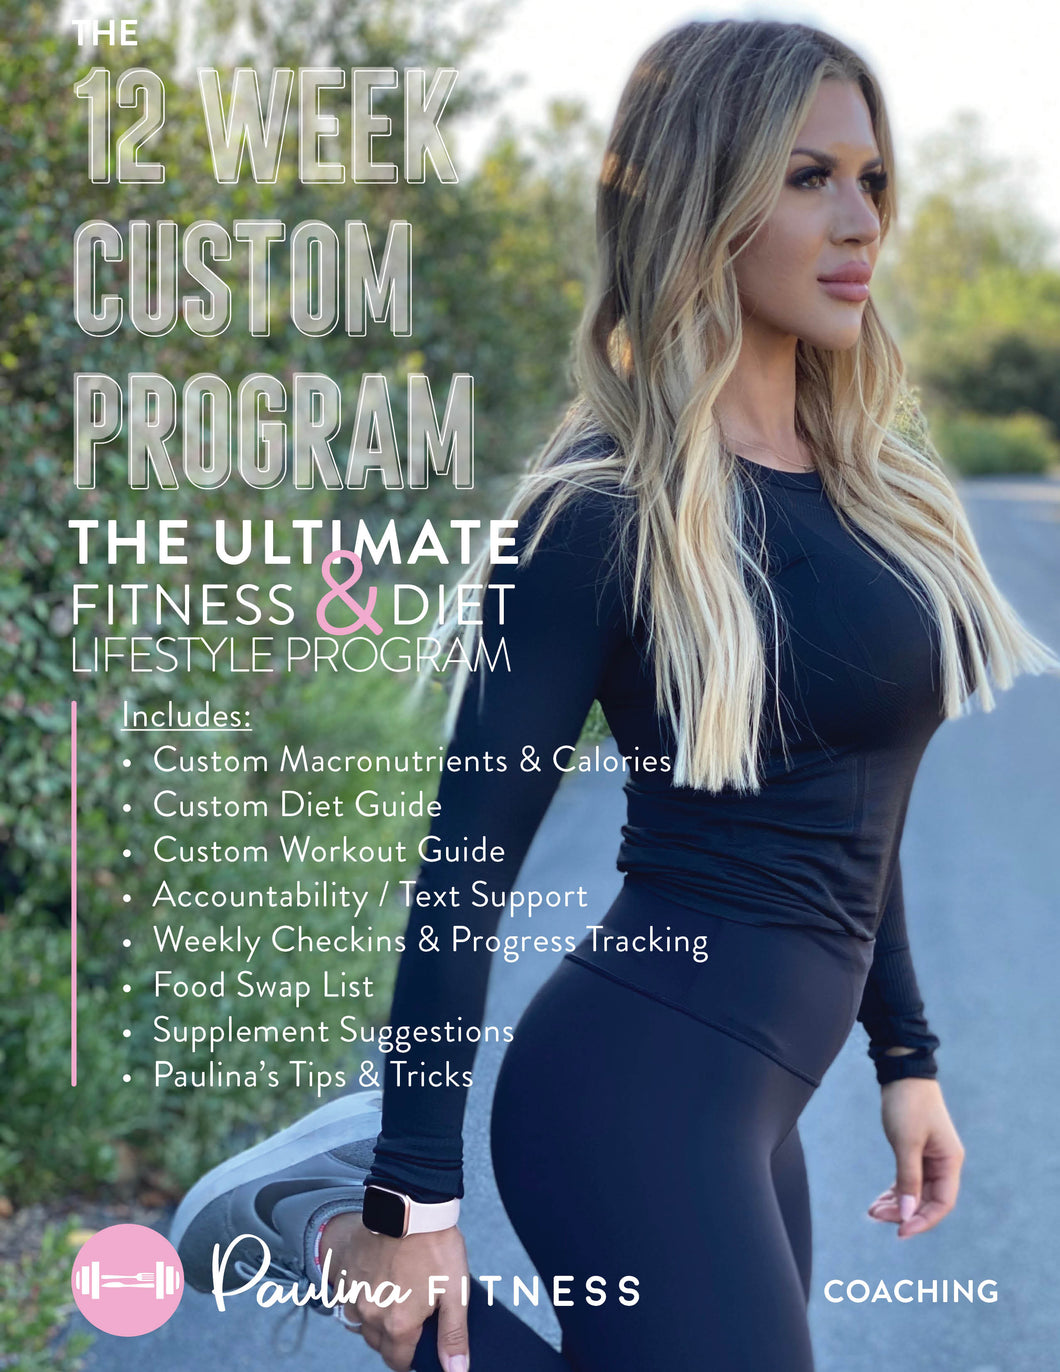 The Paulina Fitness 12 Week CUSTOM Program